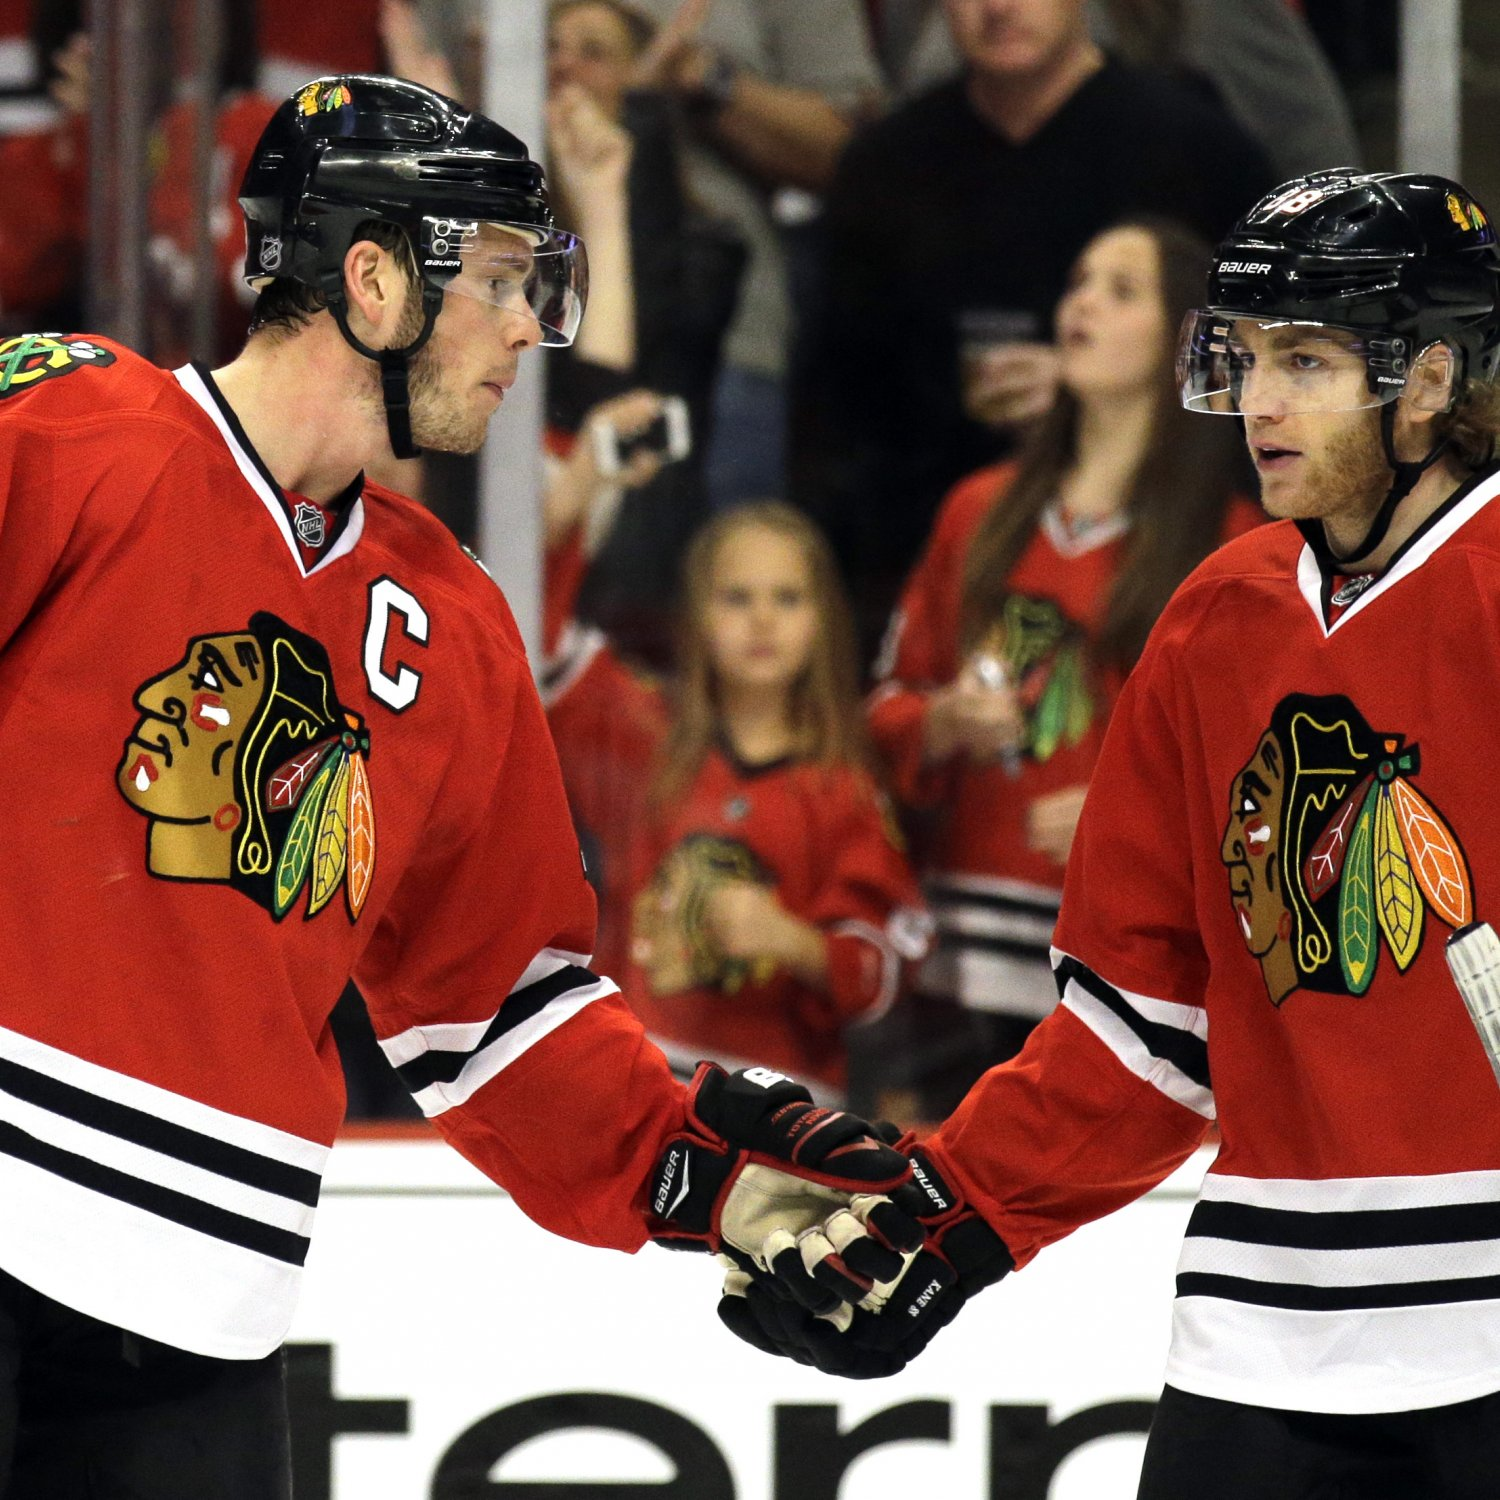 NHL Playoff Schedule 2015: Complete Dates, TV Info For